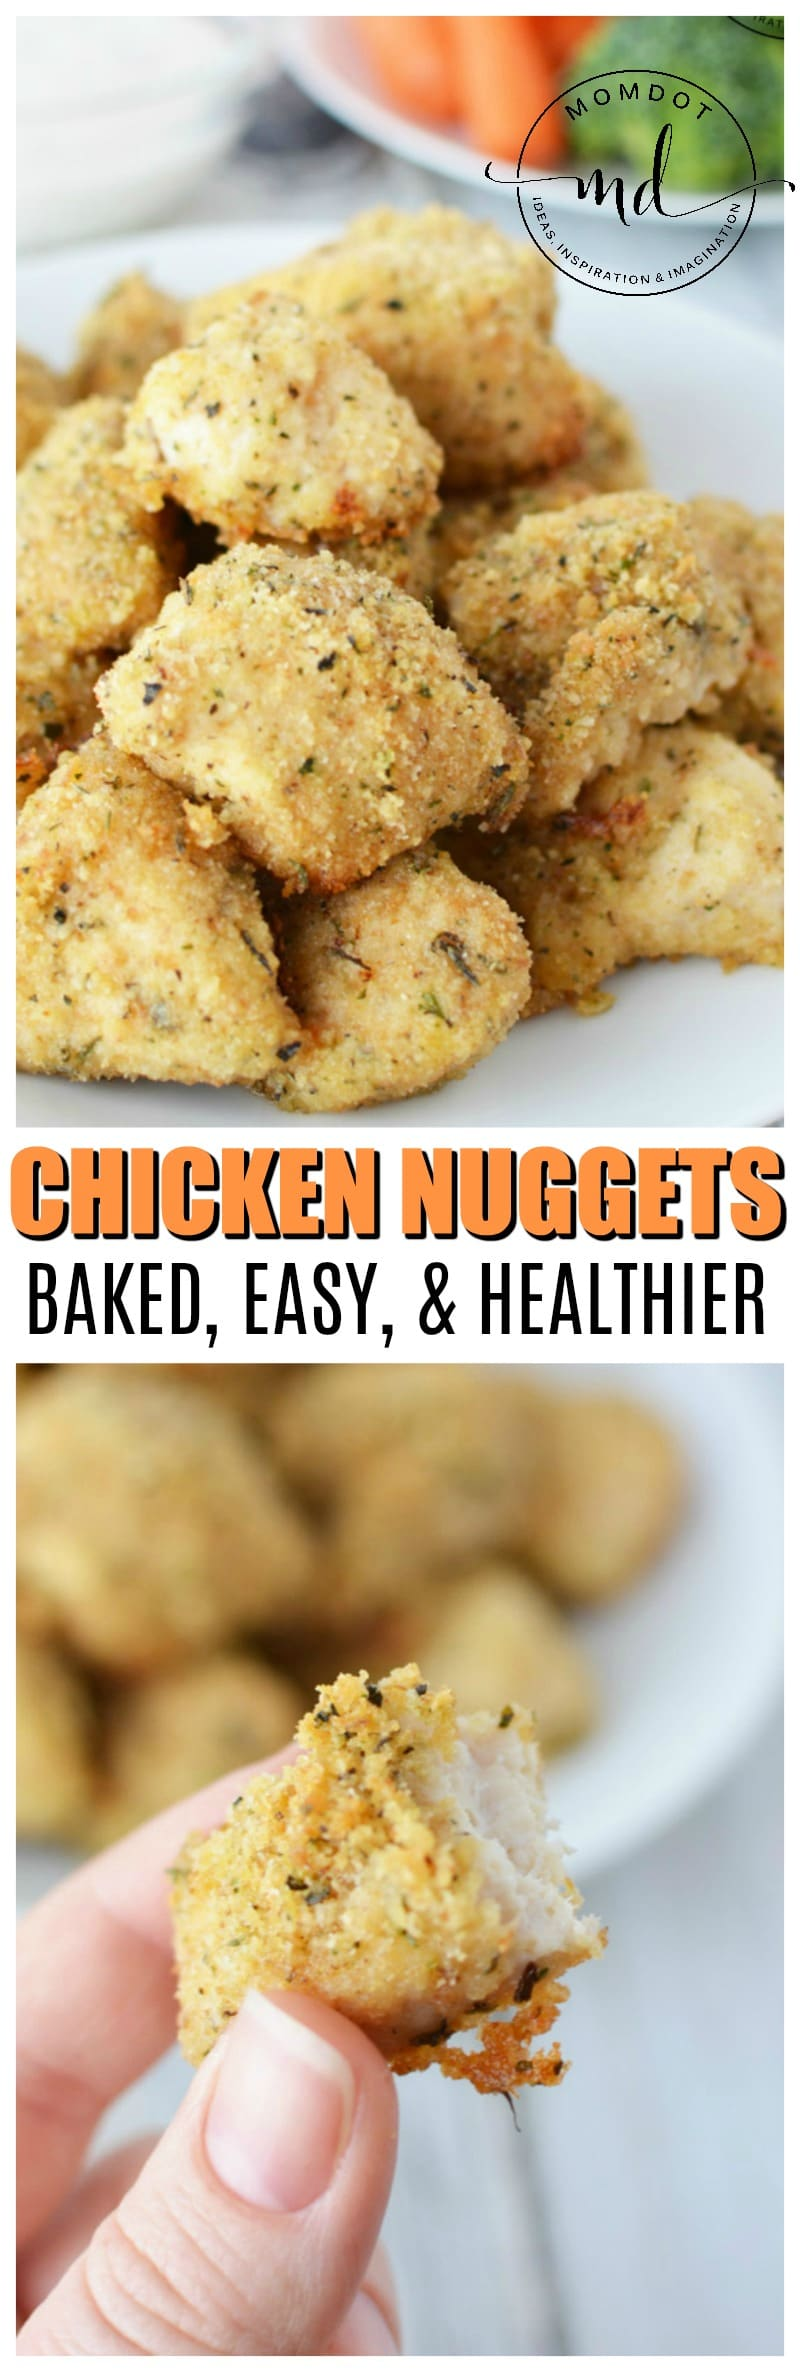 baked nuggets